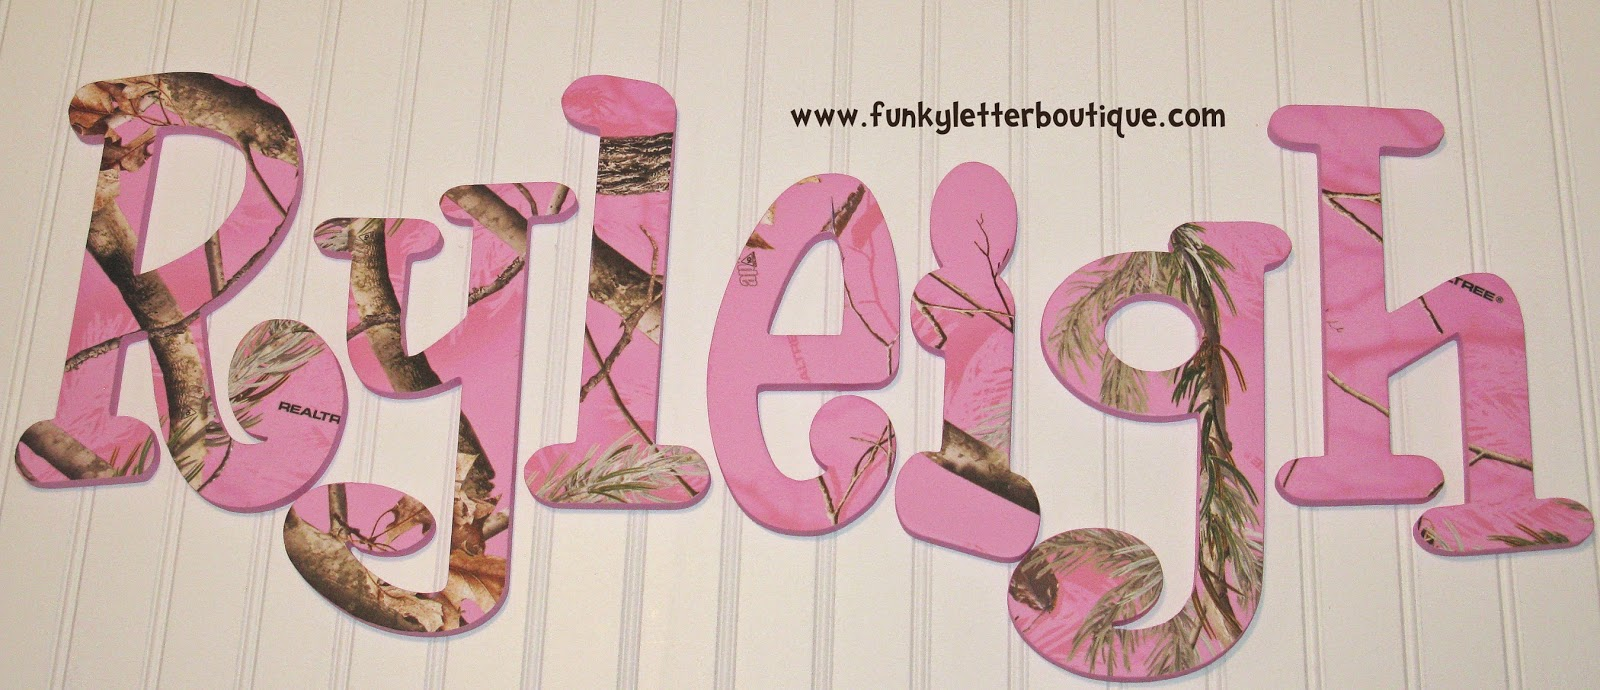 Pink Camo Bedroom Decor The Funky Letter Boutique